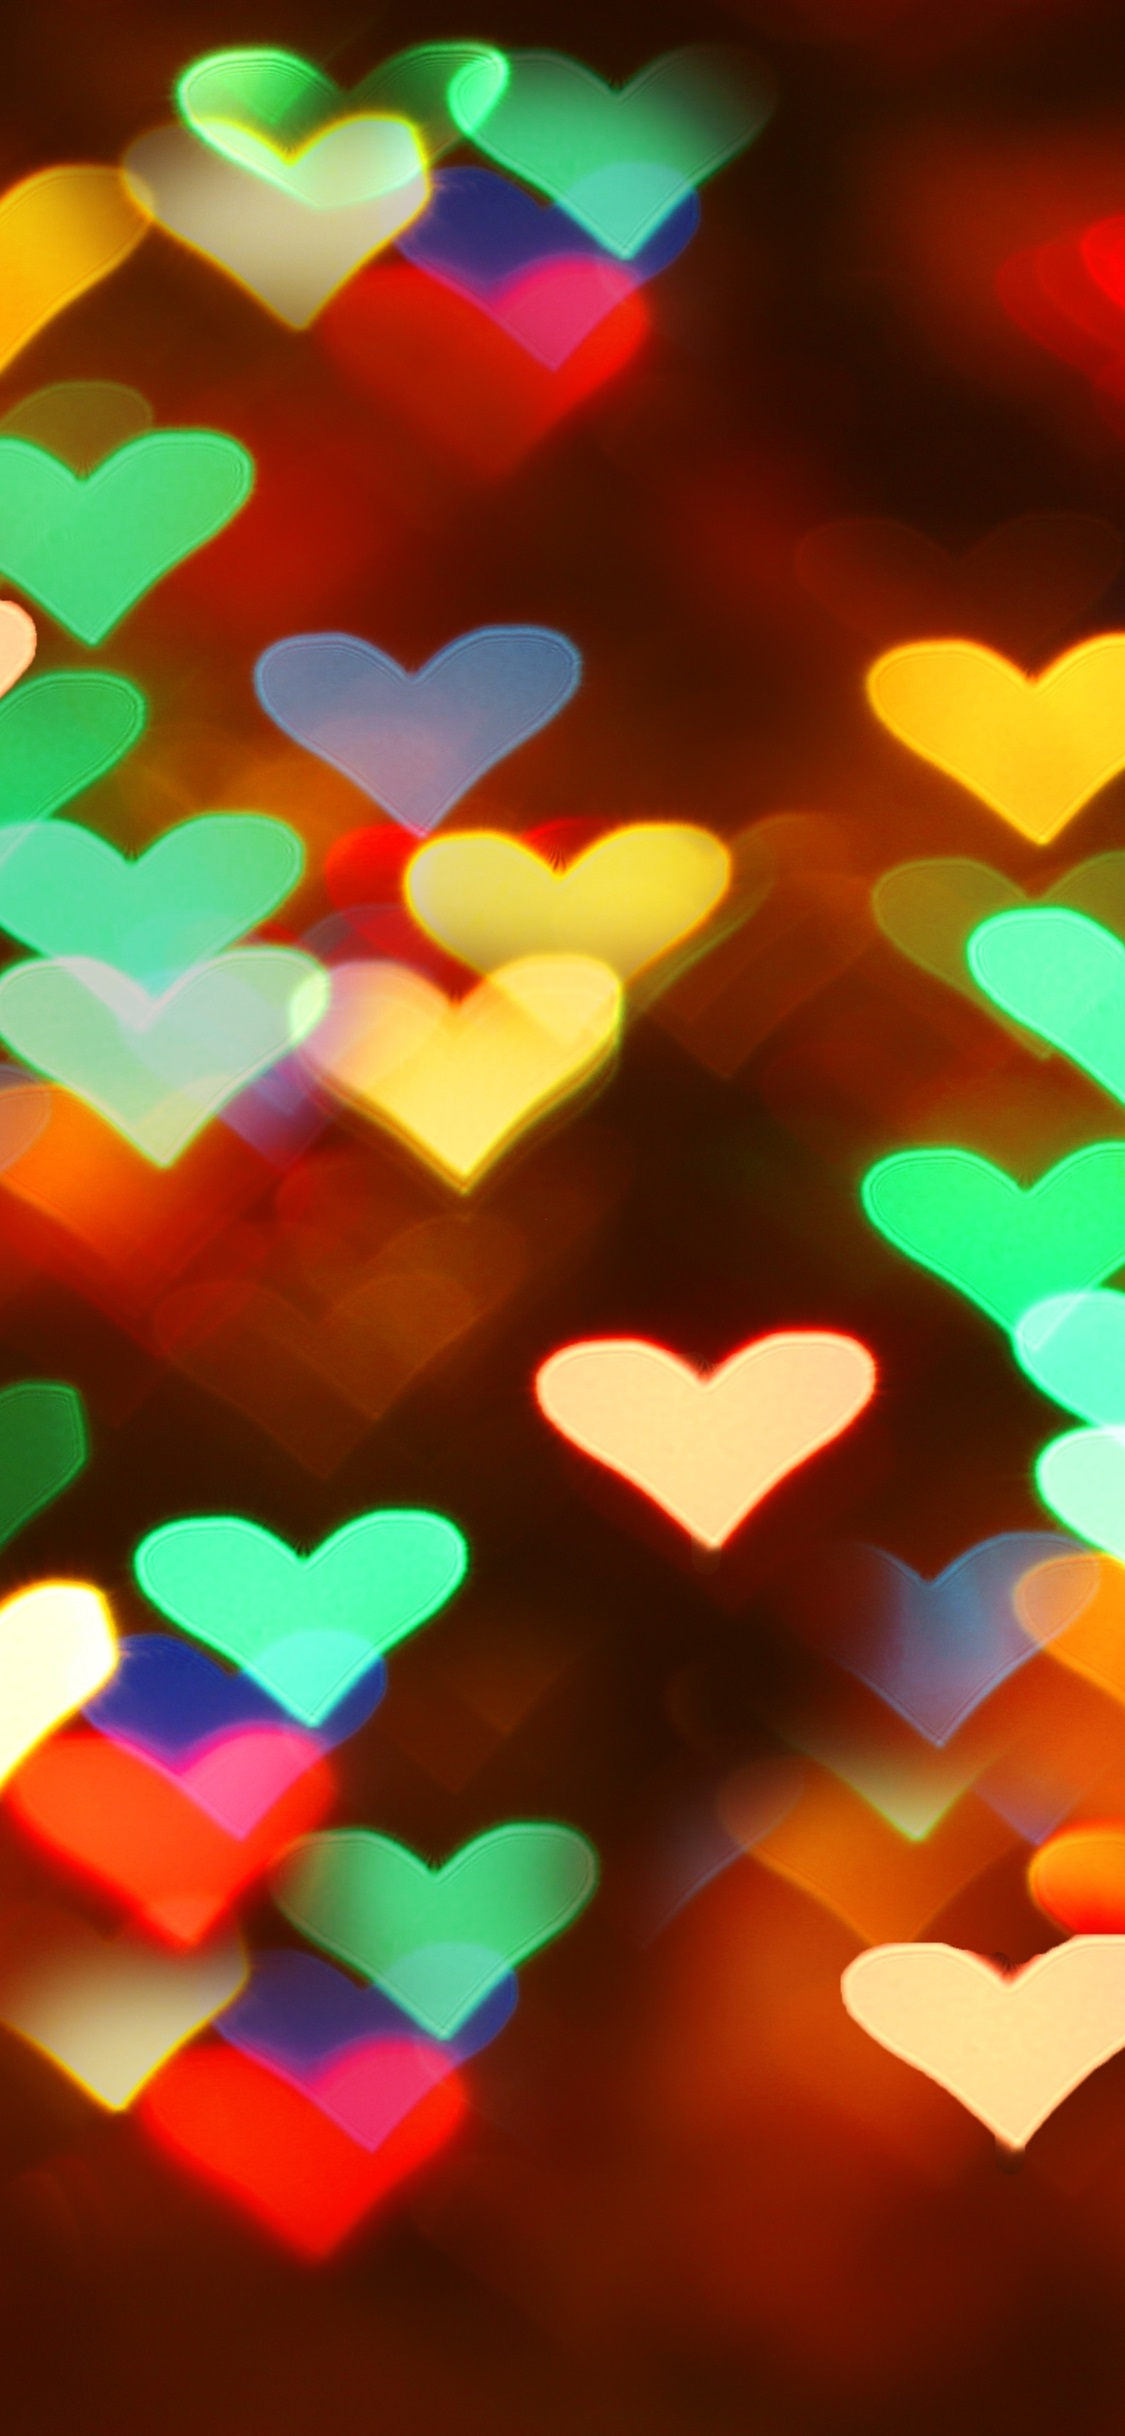 Many Love Hearts Lights Colorful Blurry 1125x2436 Iphone